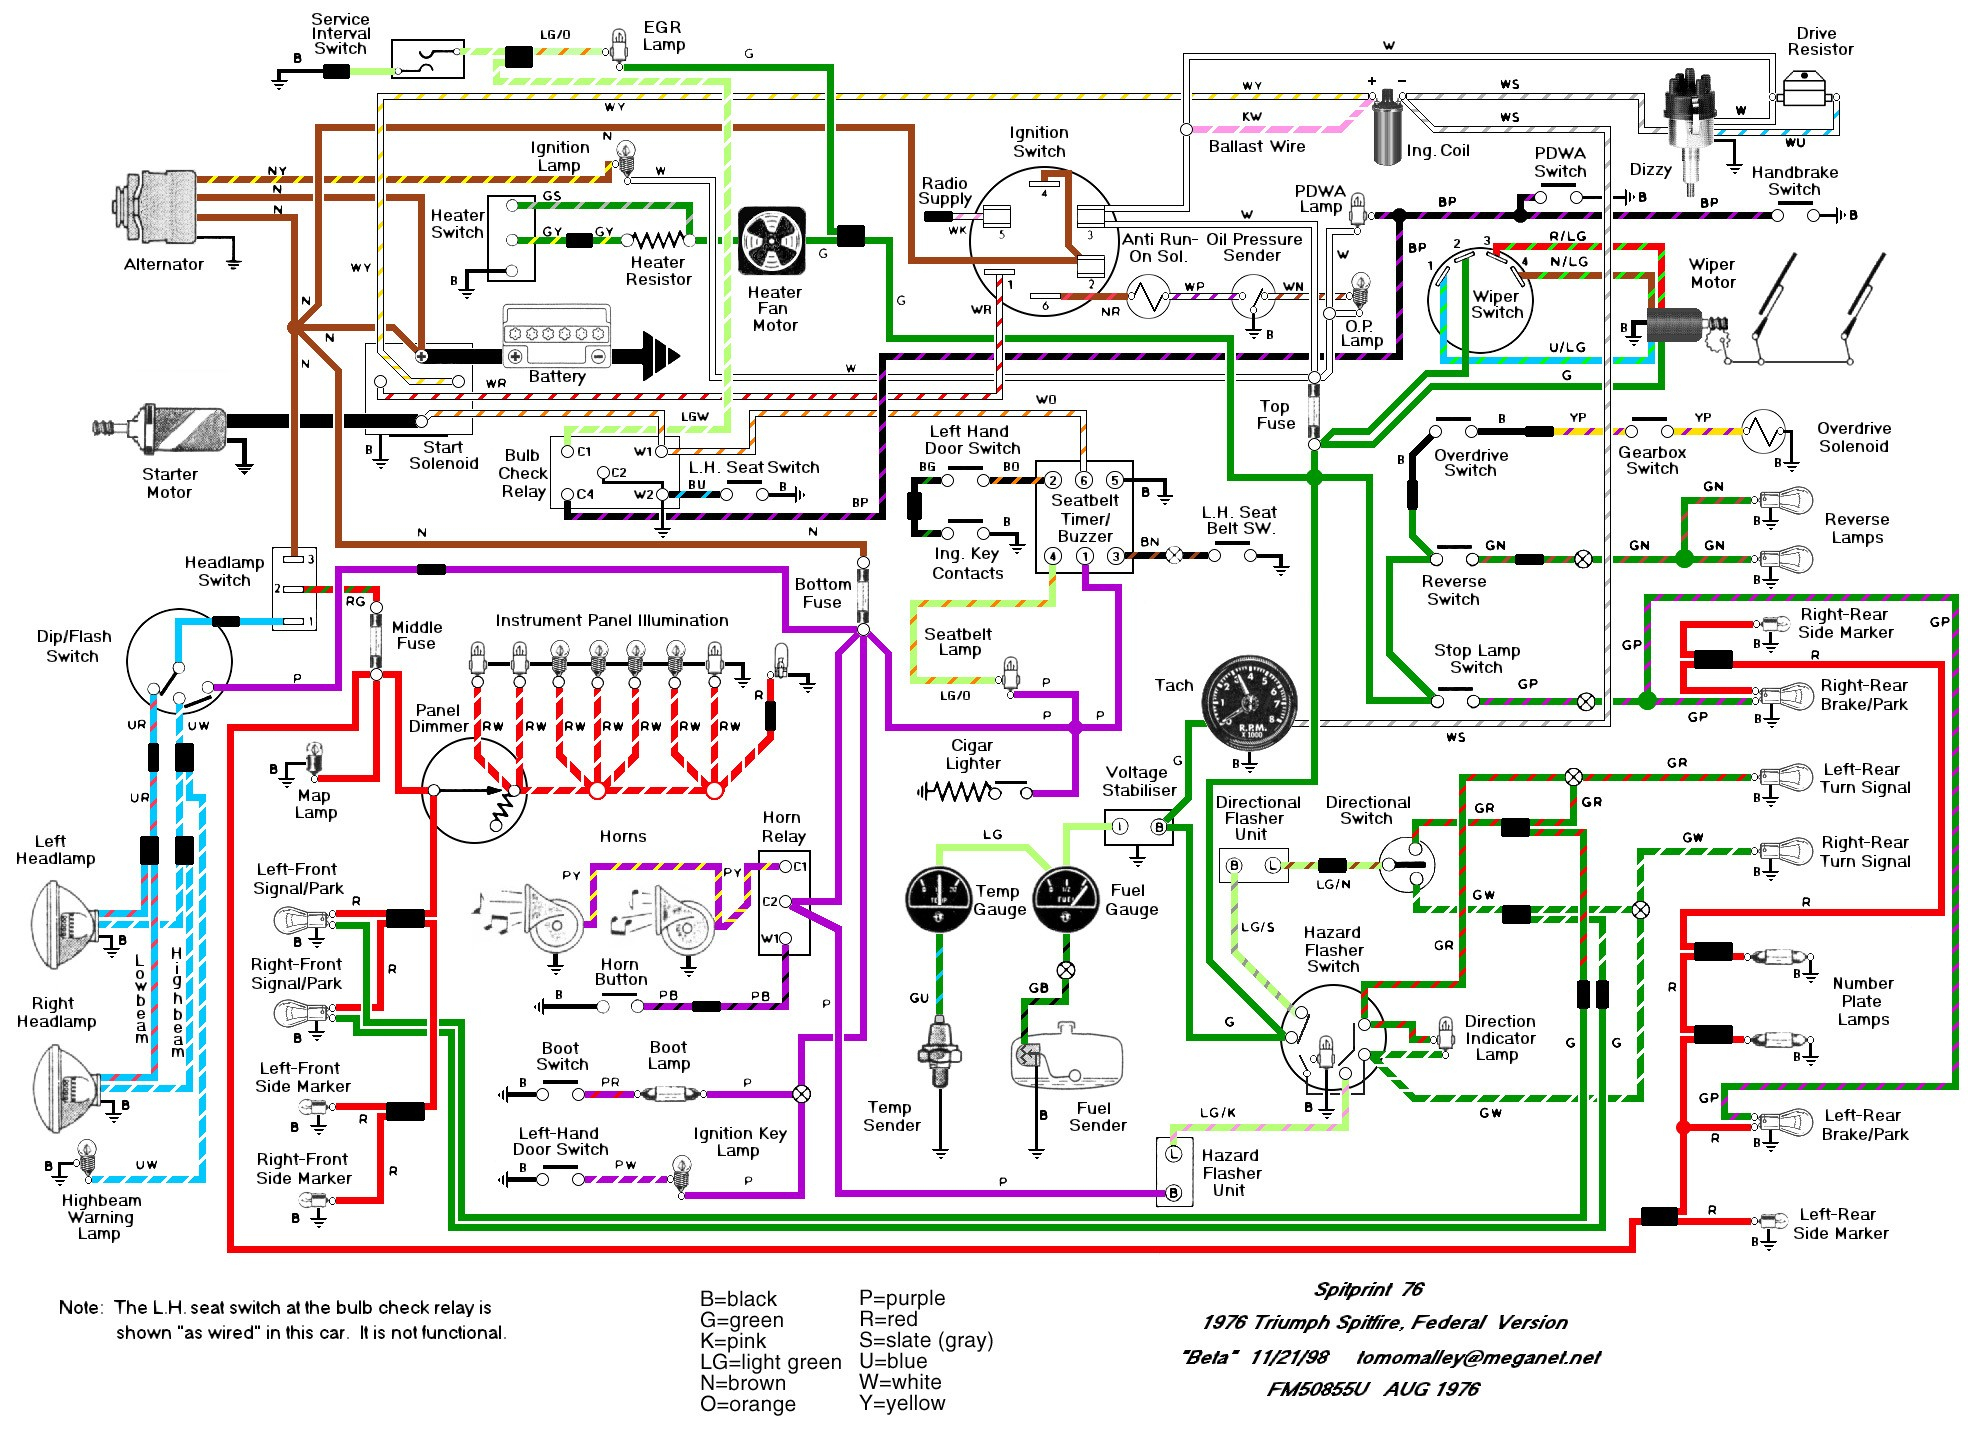 Vehicle Wiring Diagram App - Data Wiring Diagram Schematic - Wiring Diagram Software